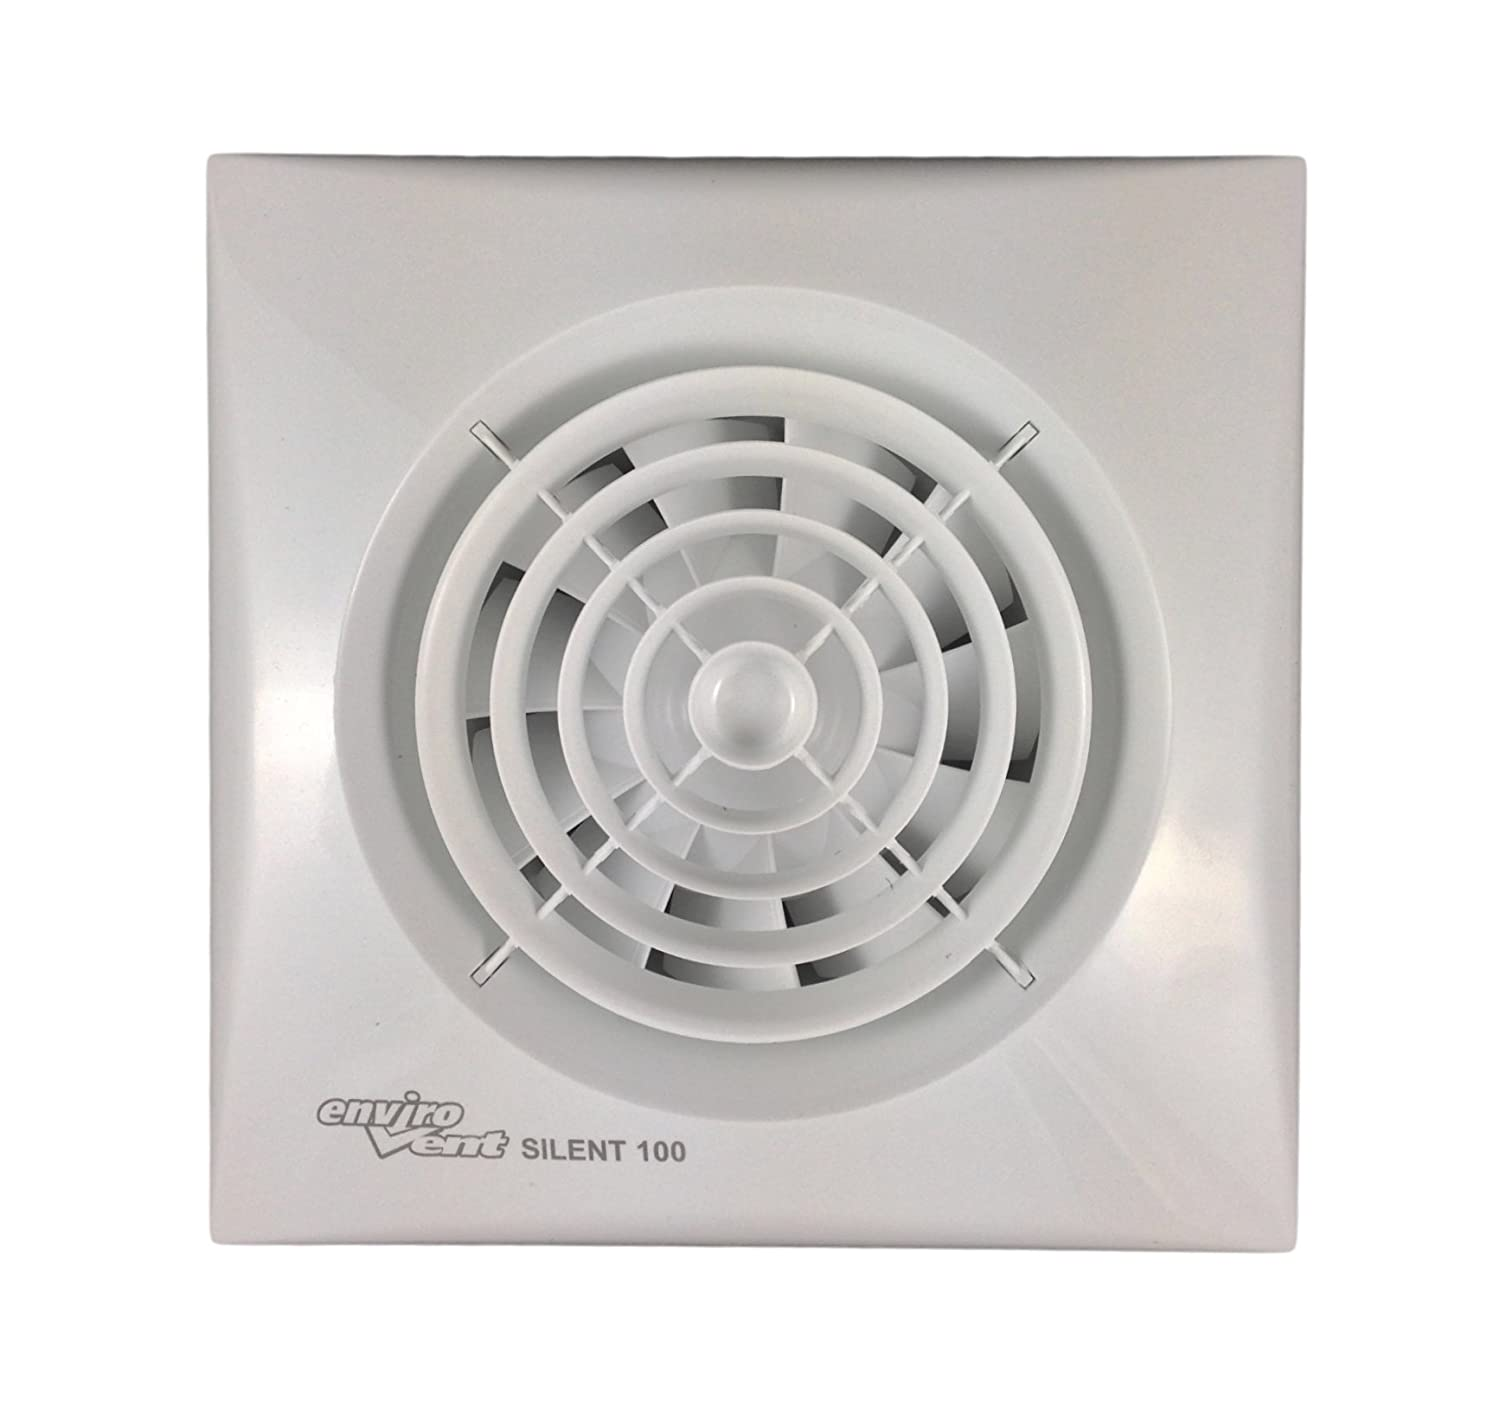 How to fit a bathroom extractor fan - Envirovent Sil100t Silent Bathroom Extractor Fan For 4 100mm Ducting Amazon Co Uk Diy Tools